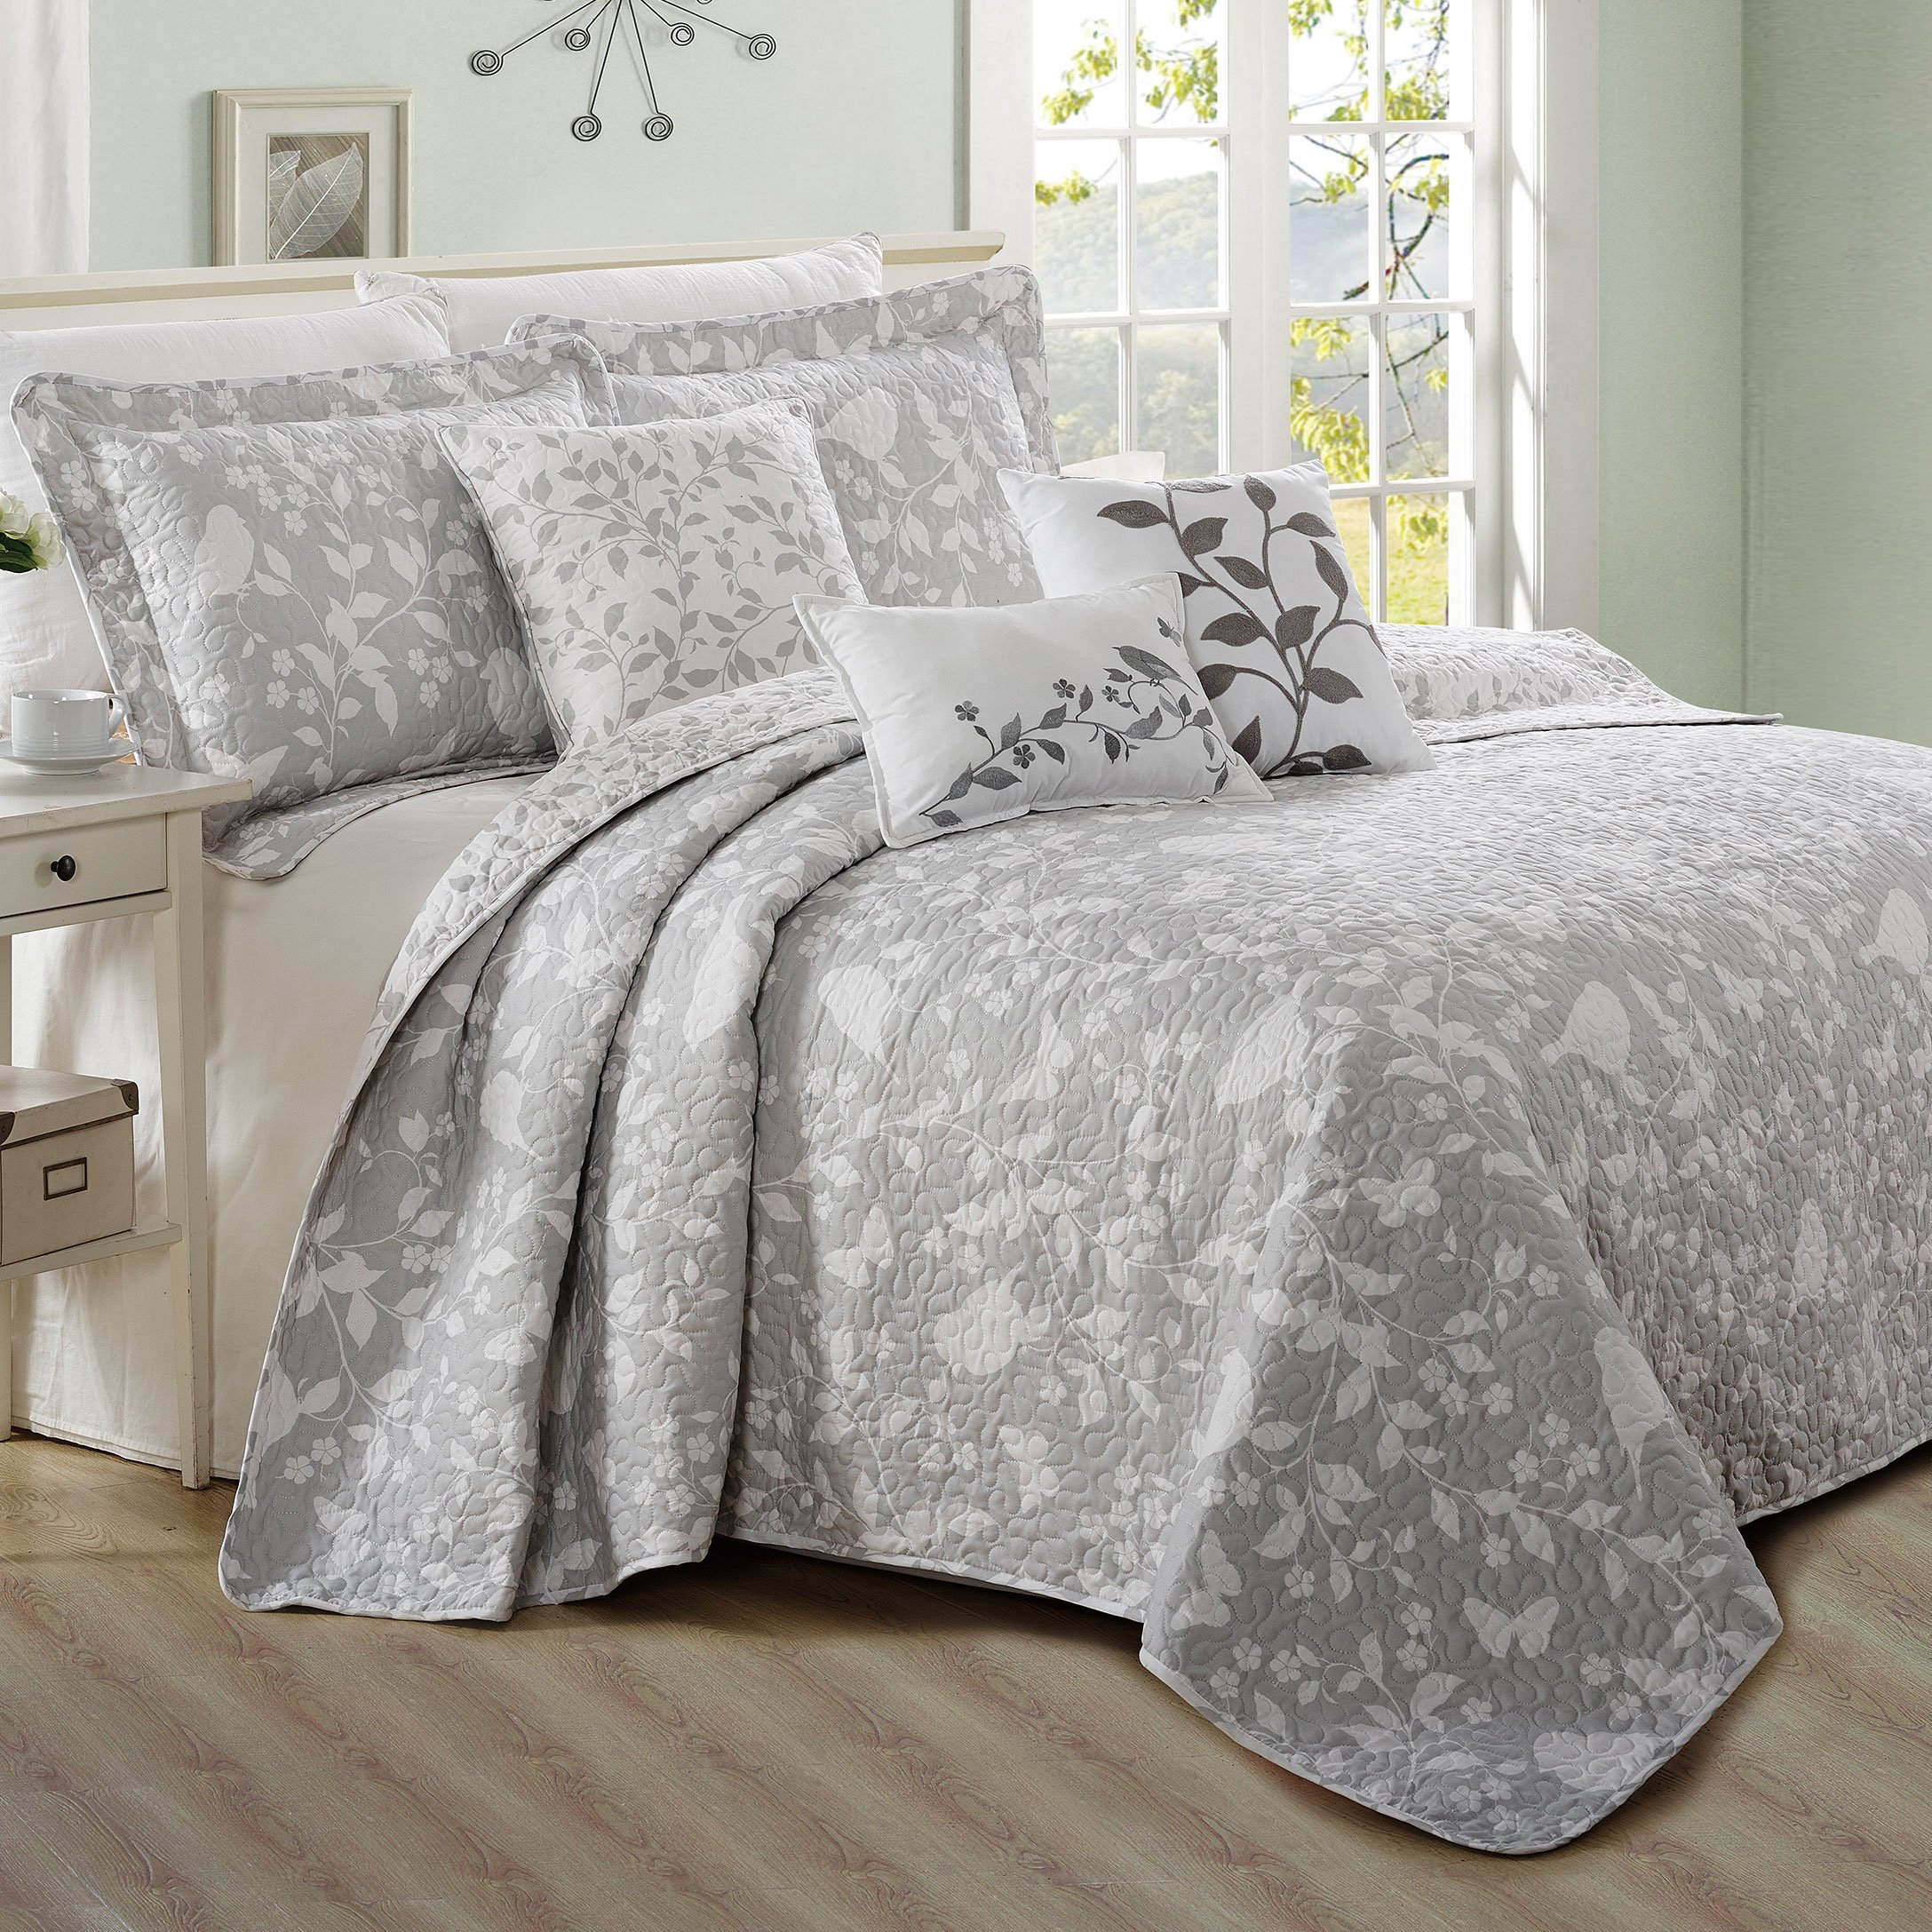 Home Soft Things Serenta 6 Piece Bird Song Printed Microfiber Quilts Coverlet Set, Queen, Gray